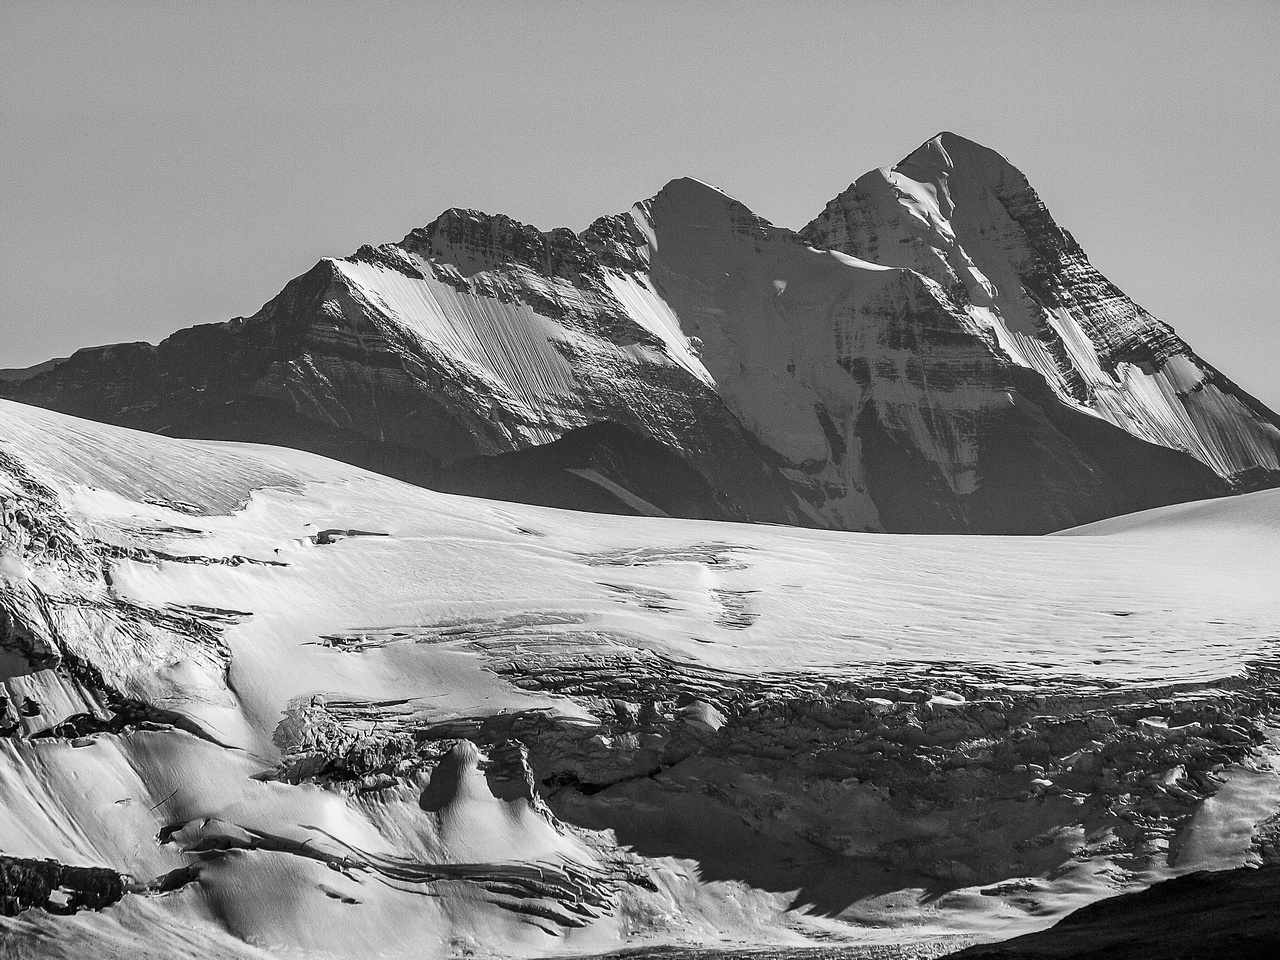 The mighty Mount Bryce looms over the Athabasca Glacier headwall in the foreground.